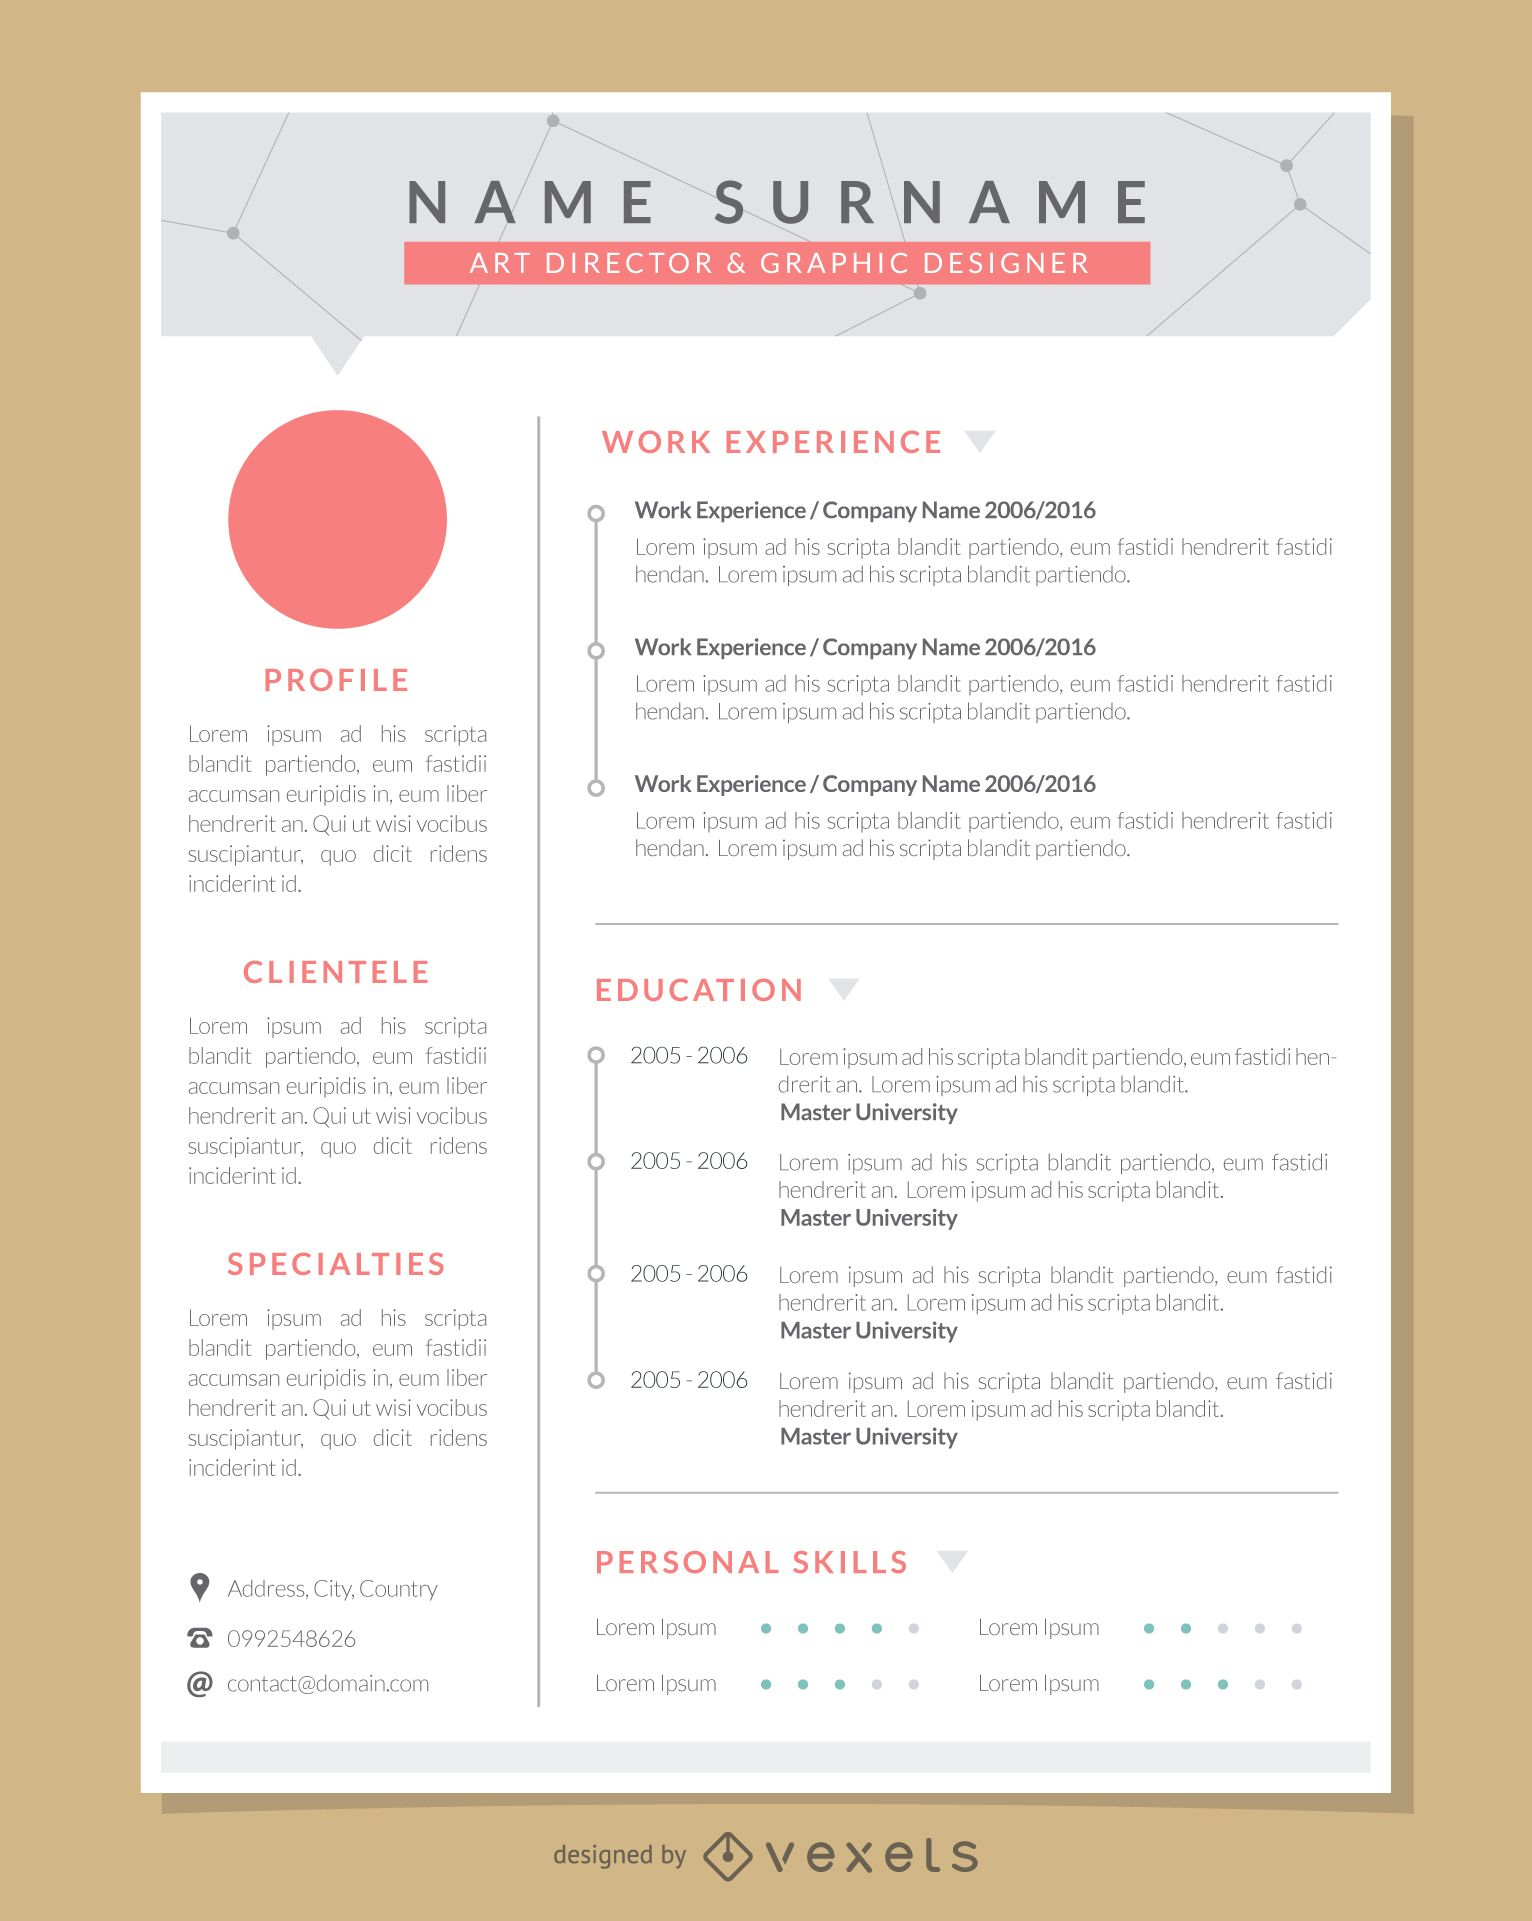 Graphic Designer Resume 2014 Graphic Artist Pro Resume Template Vector Download